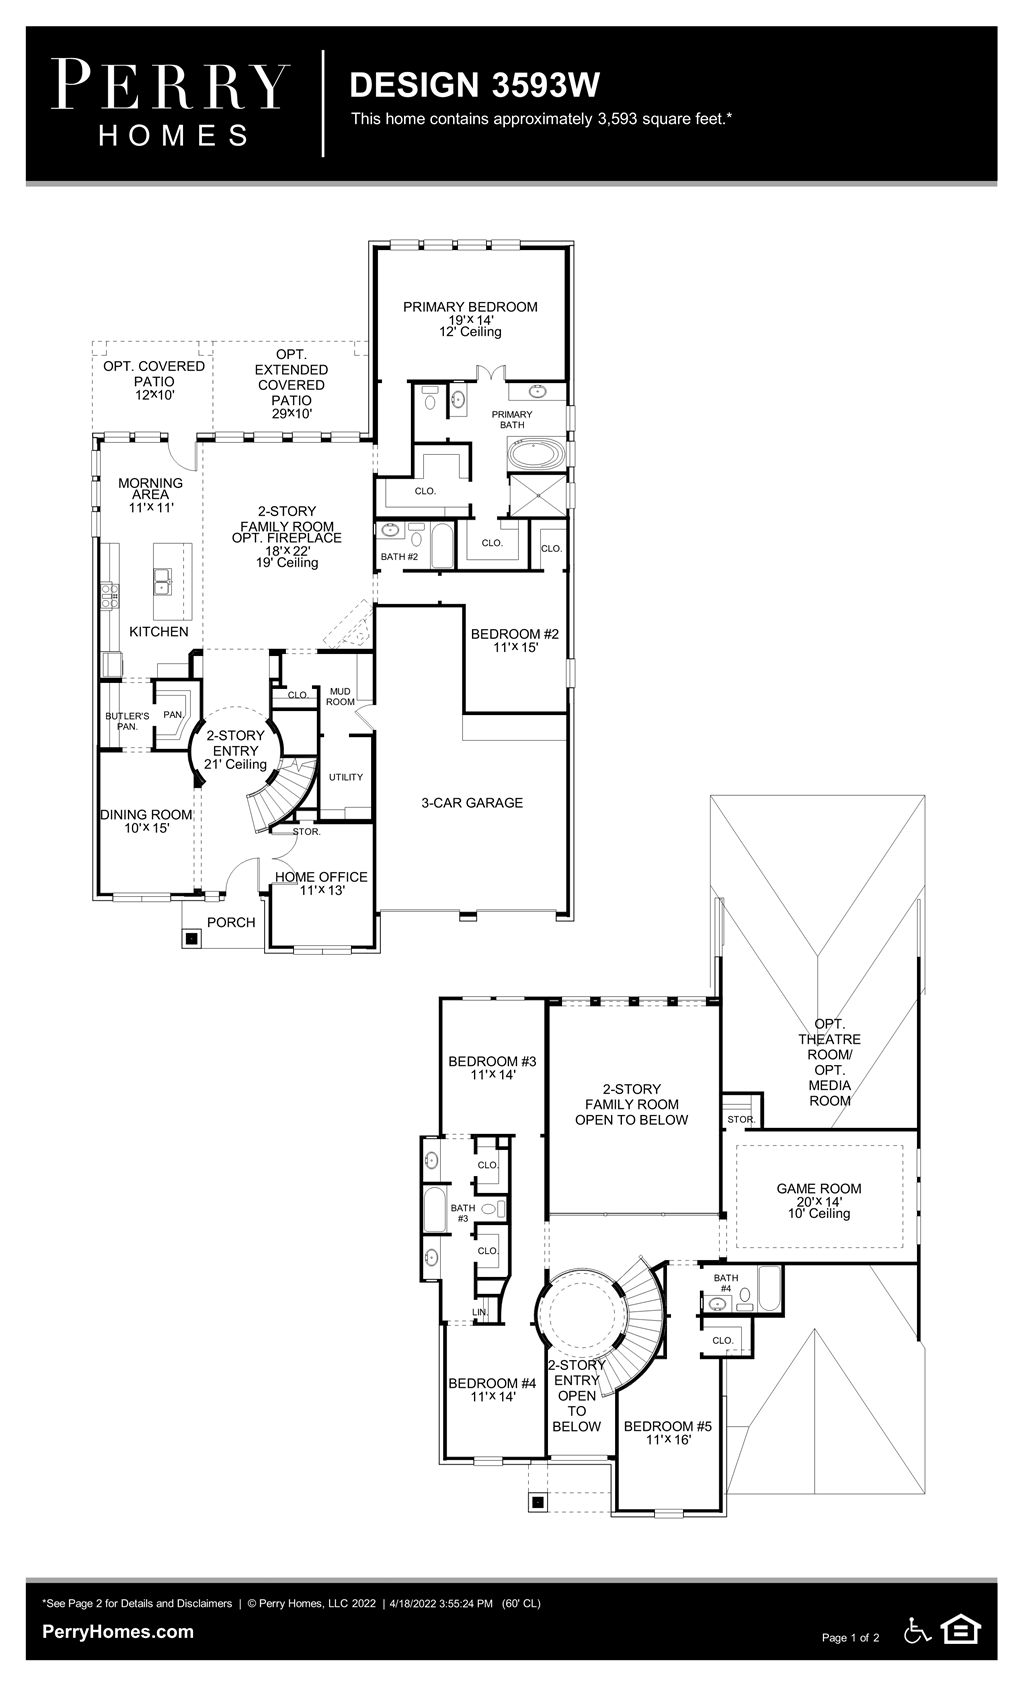 Floor Plan for 3593W